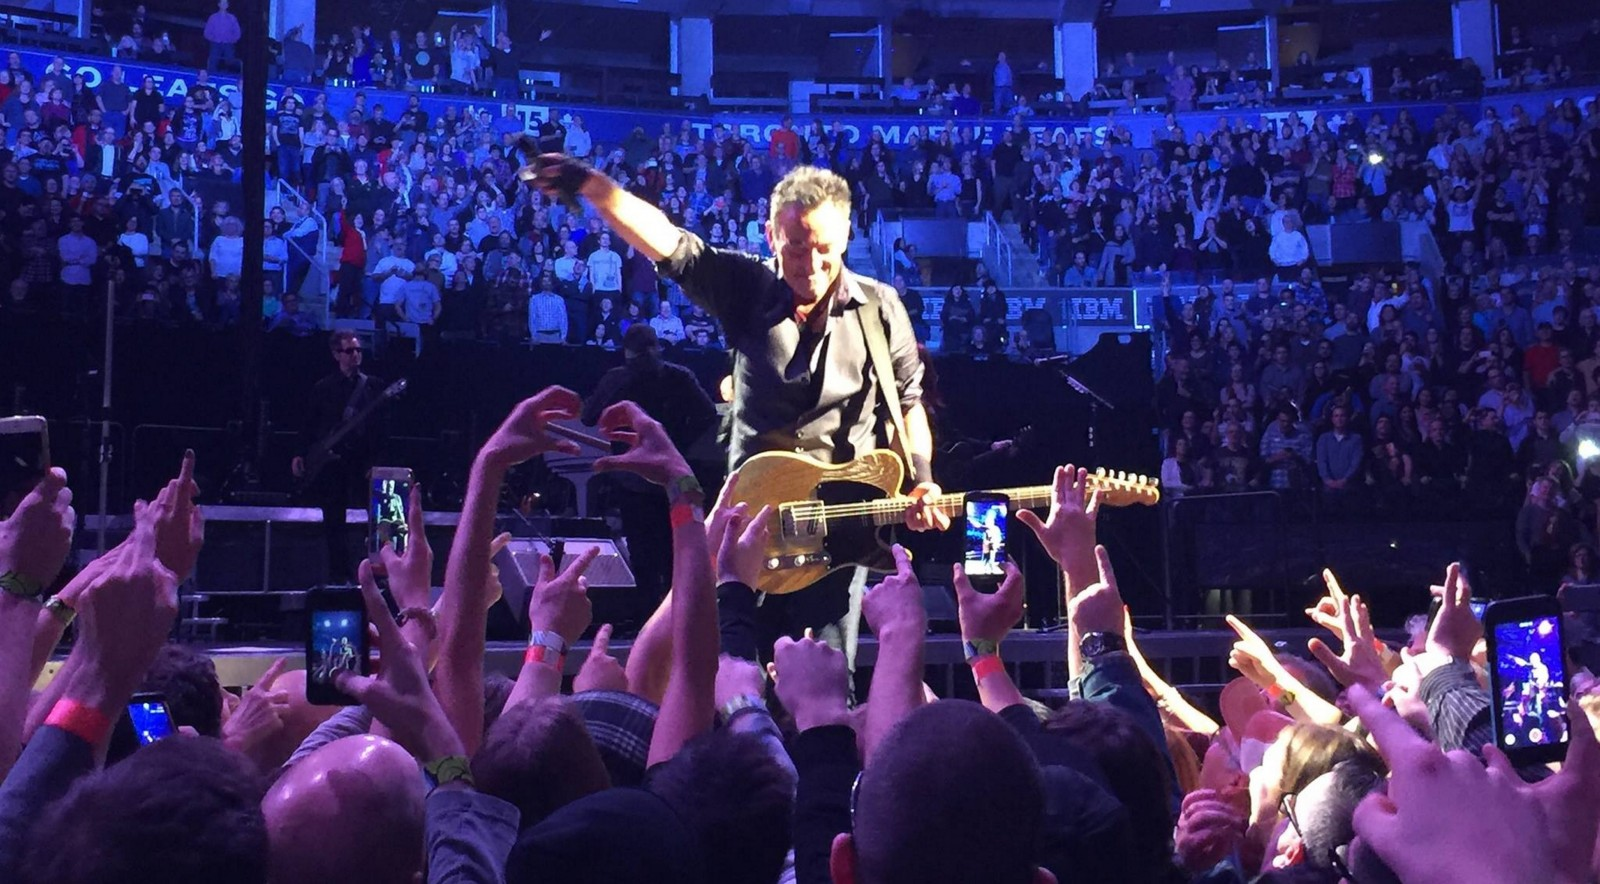 Bruce Springsteen and the E Street Band play in Pittsburgh, just a few weeks before this month's date in Buffalo, which arrives Thursday. (Photo from Daryl Brothers)